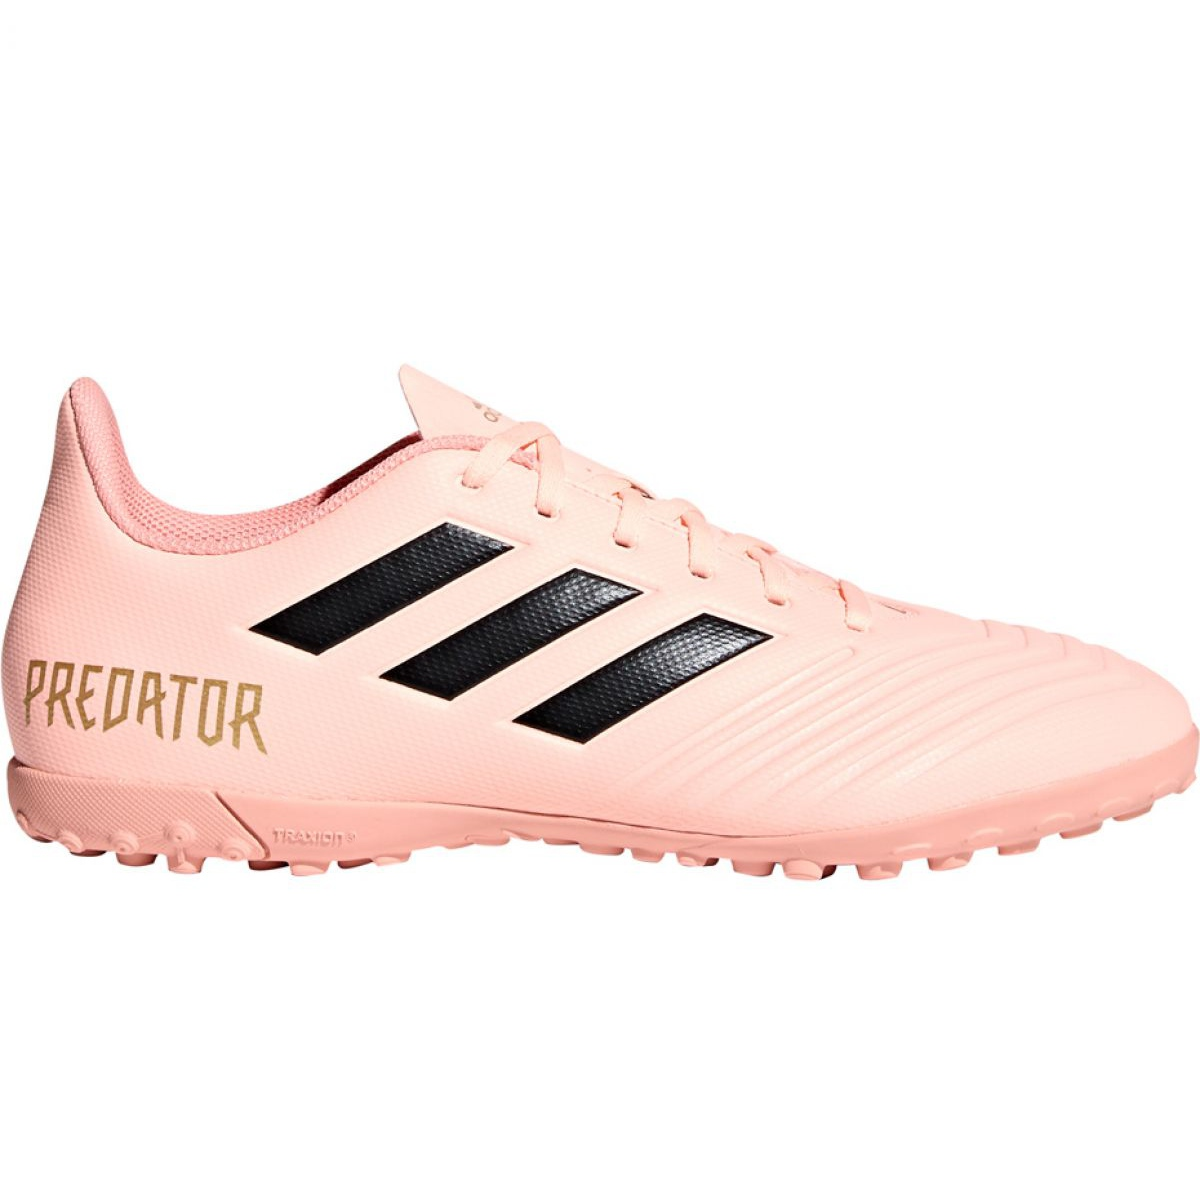 local in the middle of nowhere Spoil  Football boots adidas Predator Tango 18.4 Tf M DB2142 pink multicolored -  ButyModne.pl